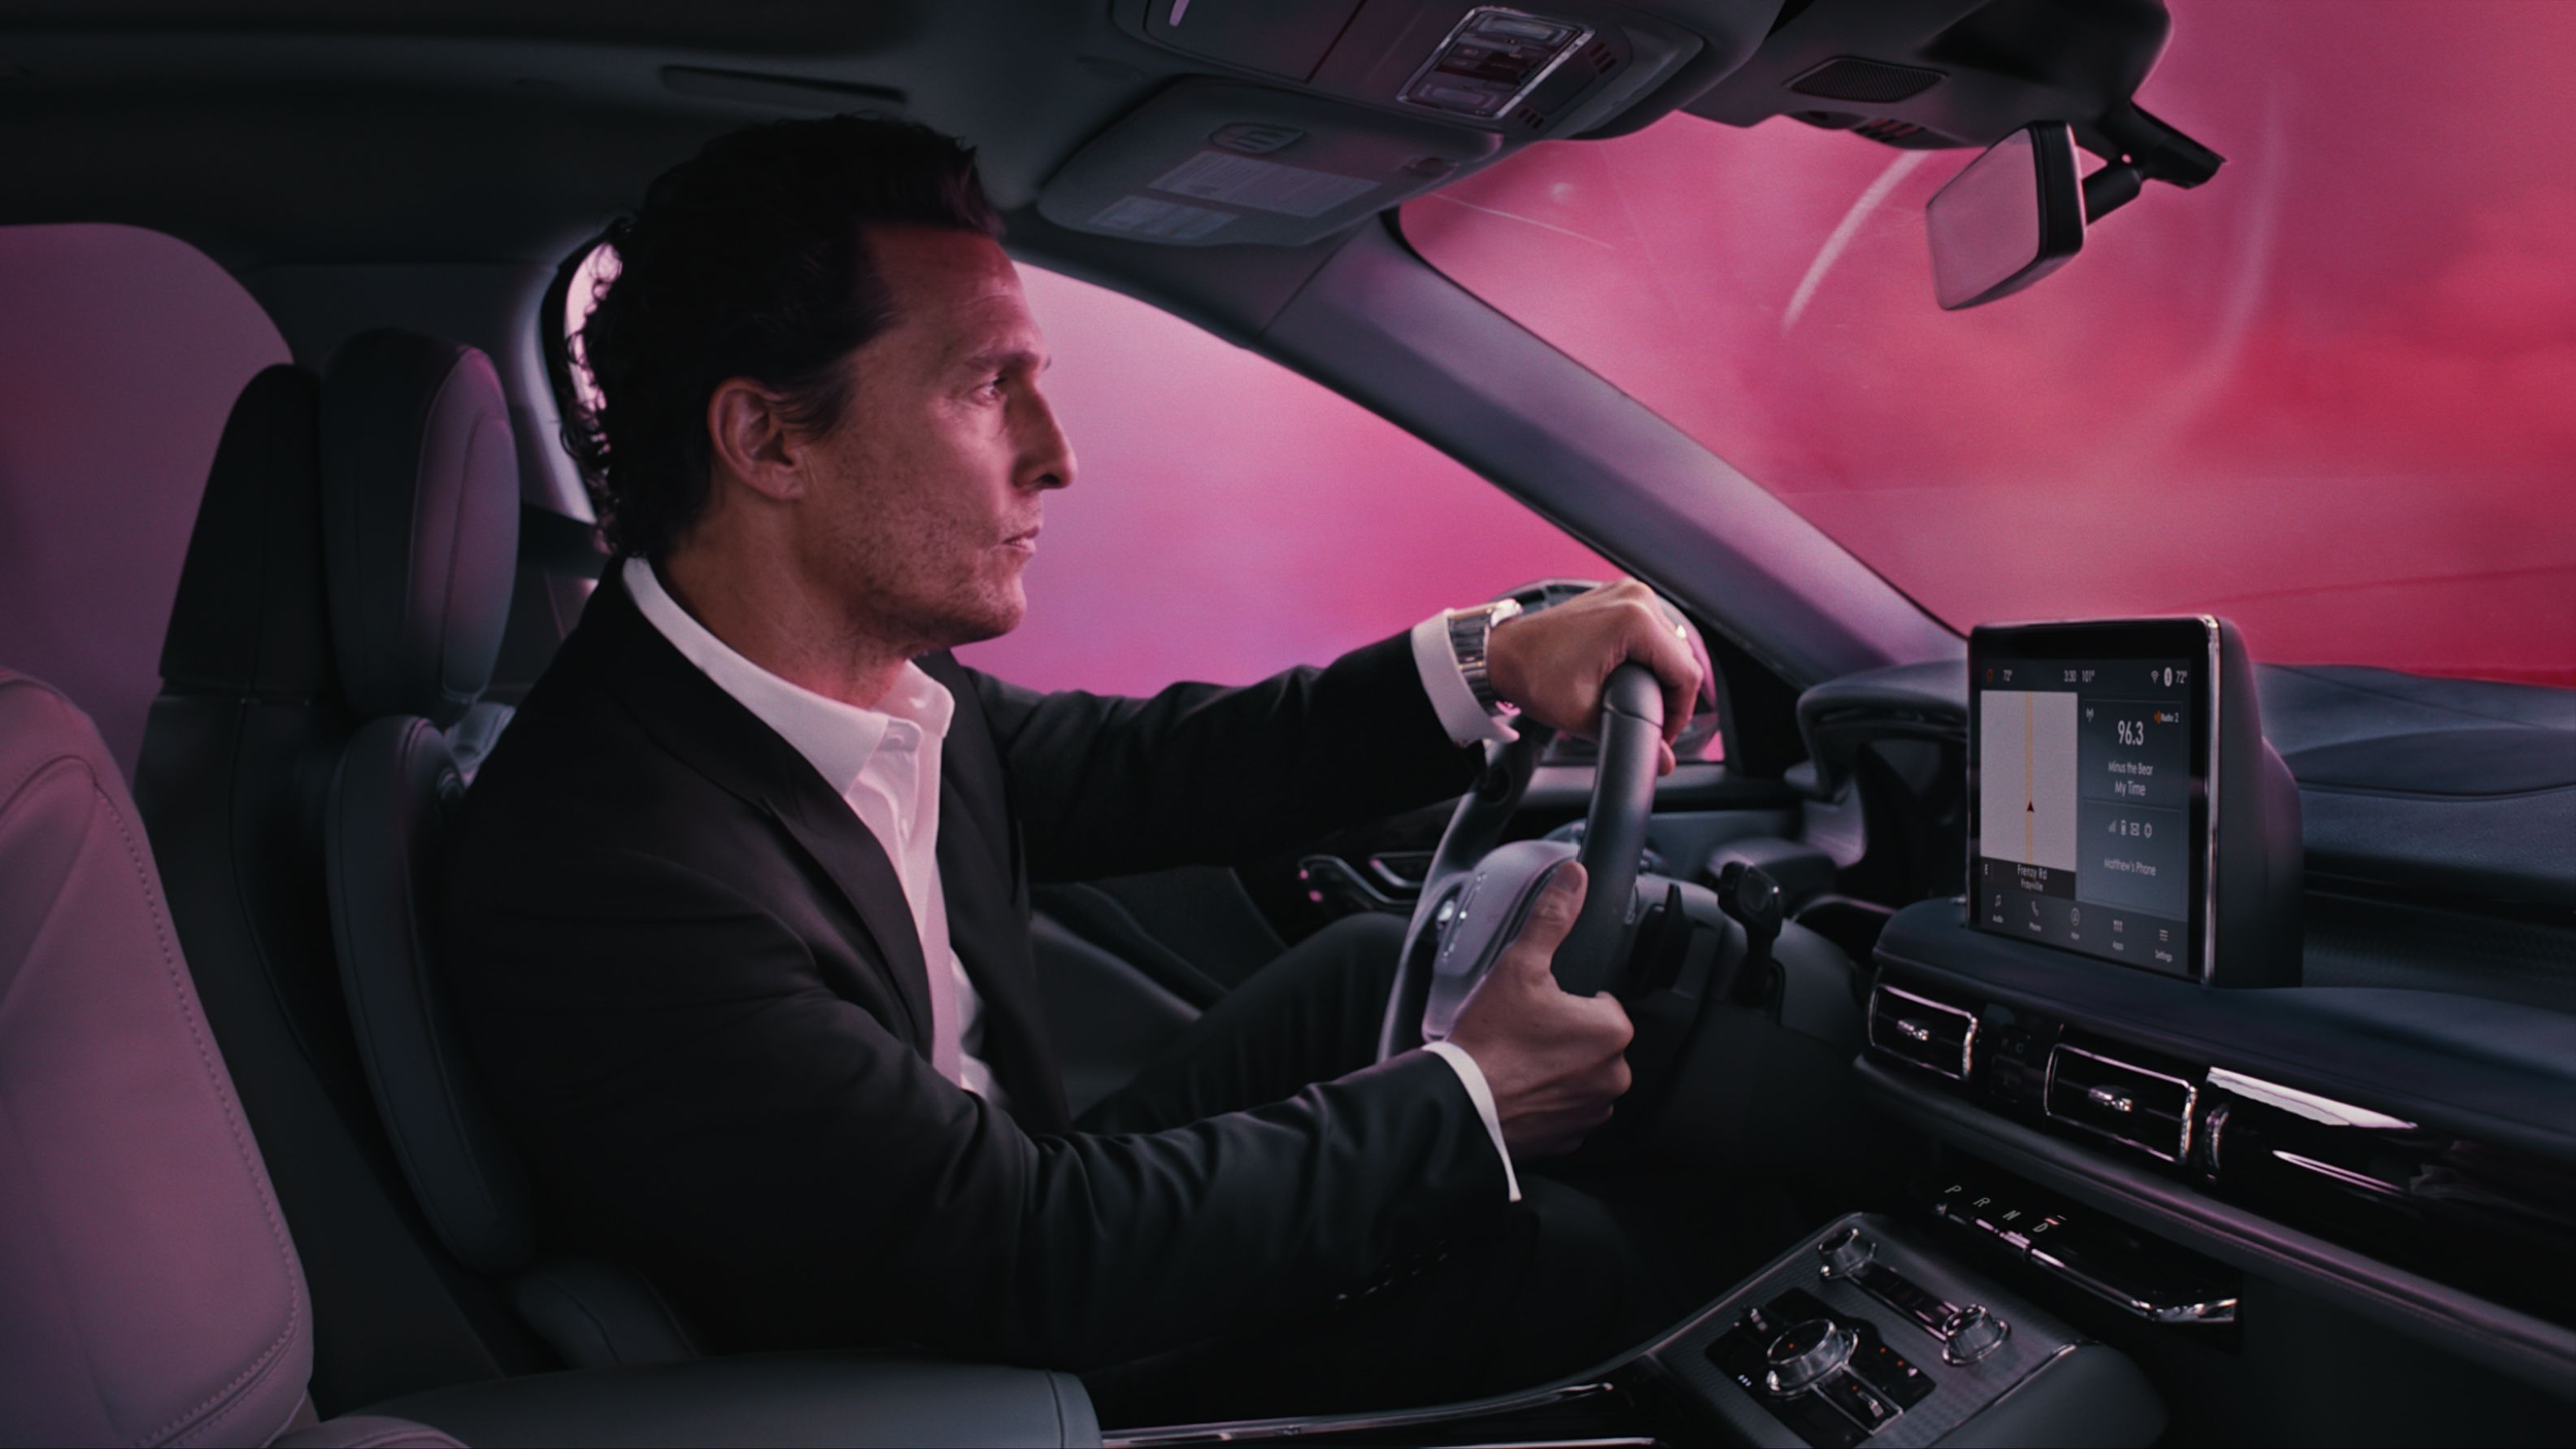 Song from infiniti commercial 2020